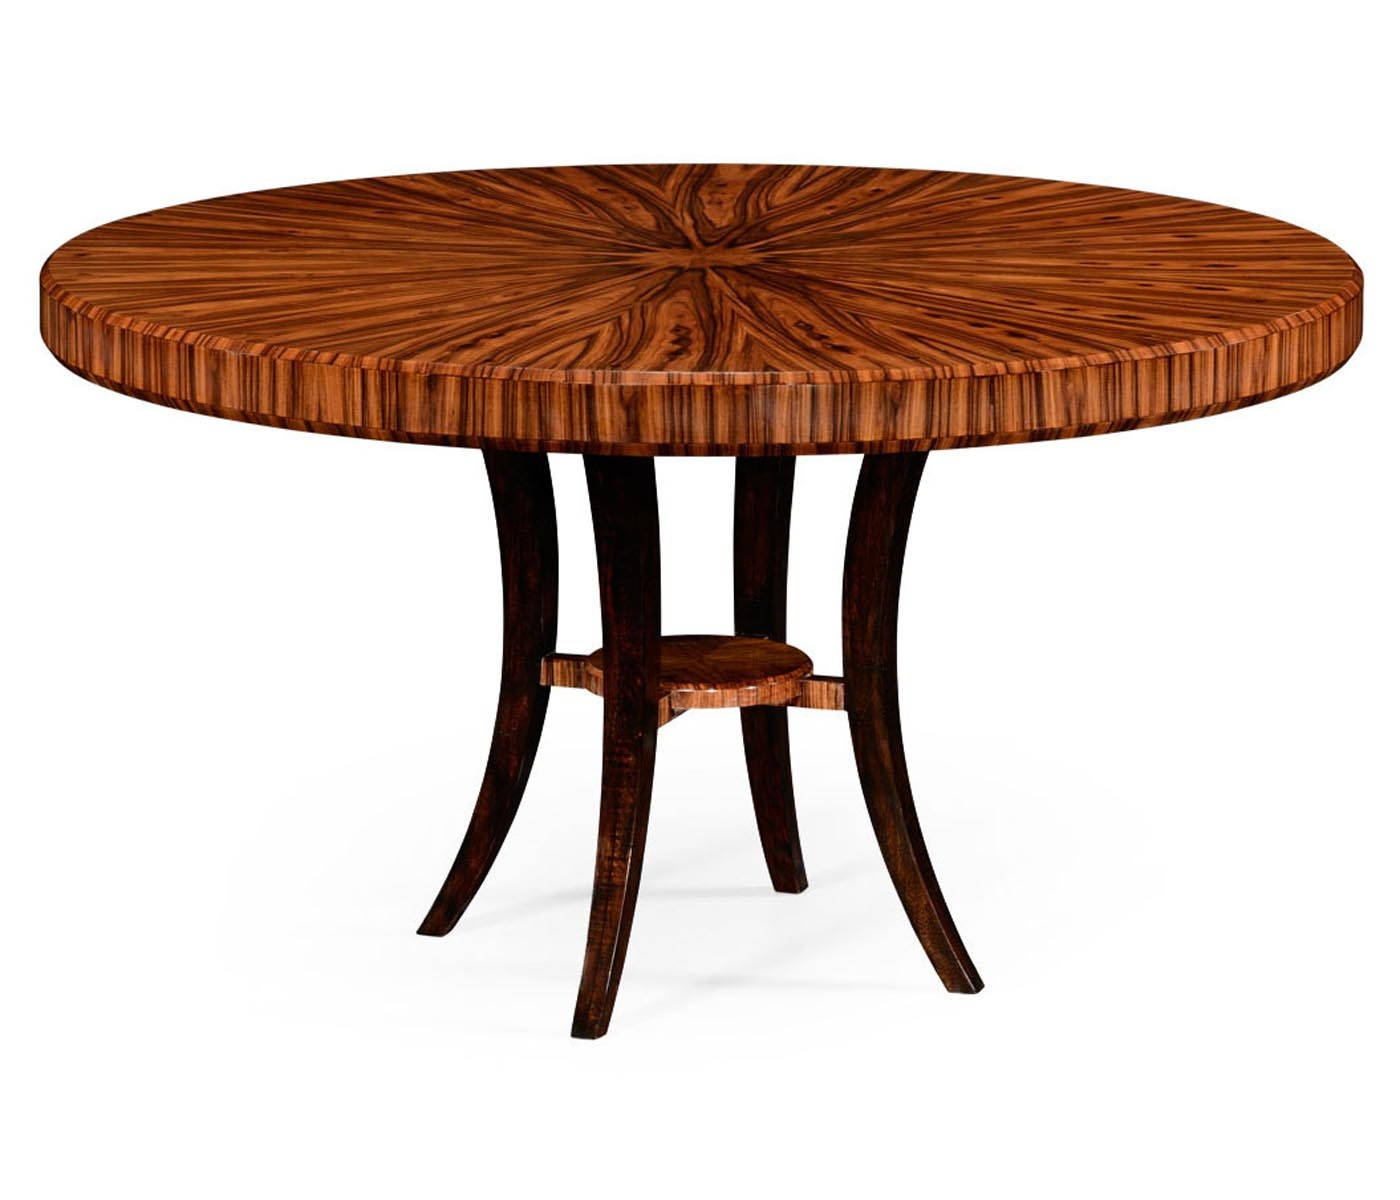 6 seater round dining table swanky interiors for 6 seater dining table